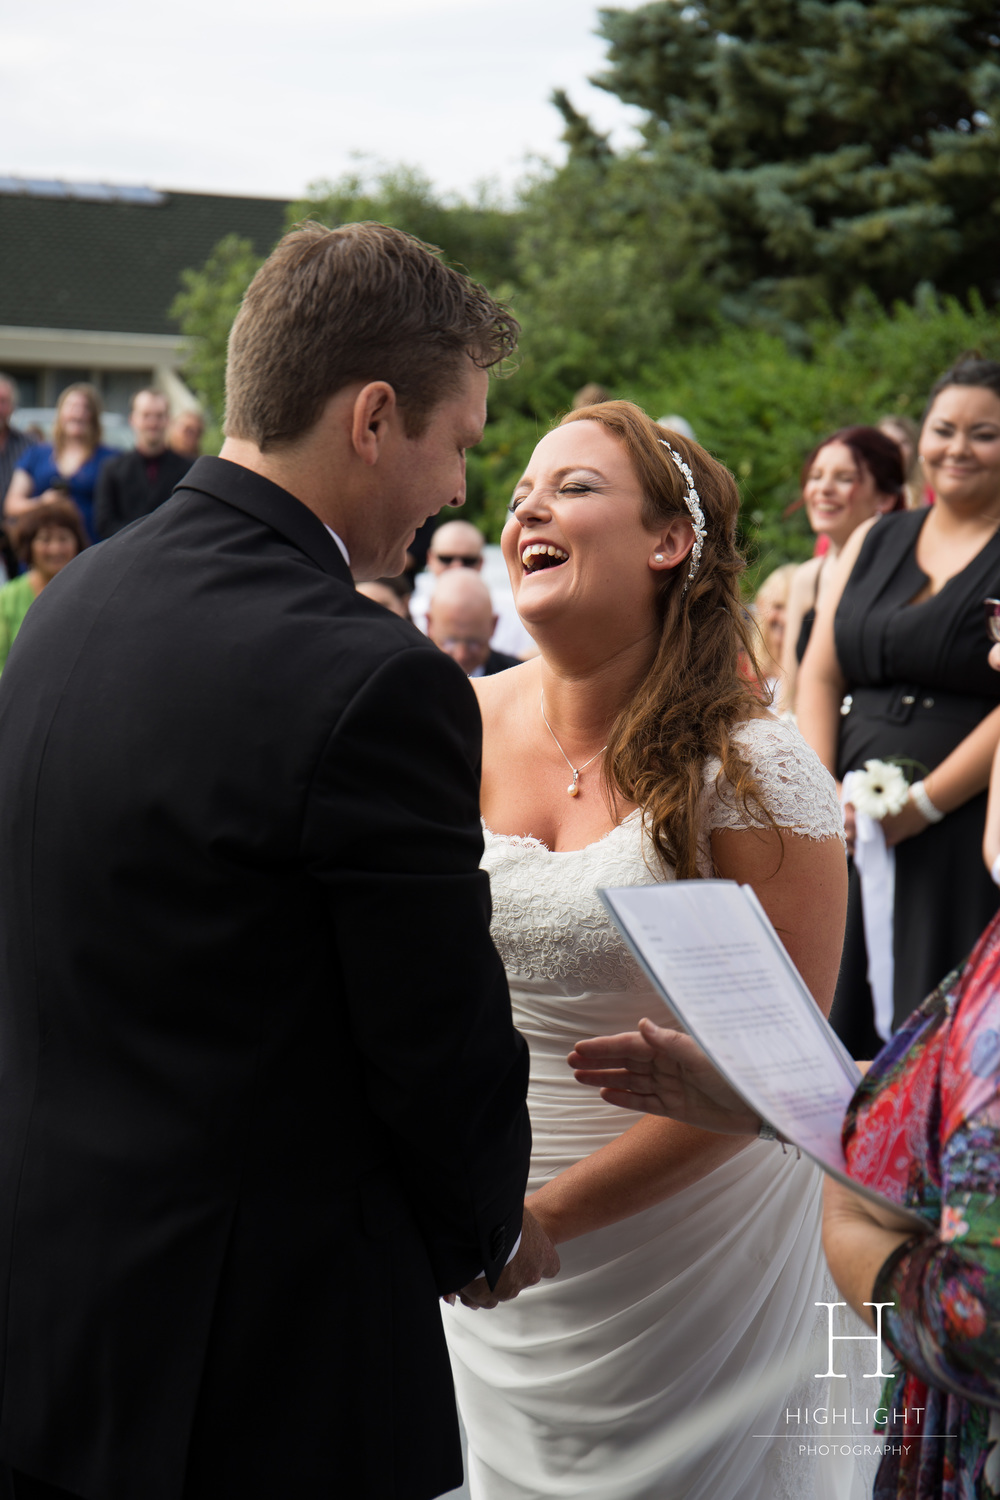 highlight-photography-new-zealand-wedding-laughter.jpg